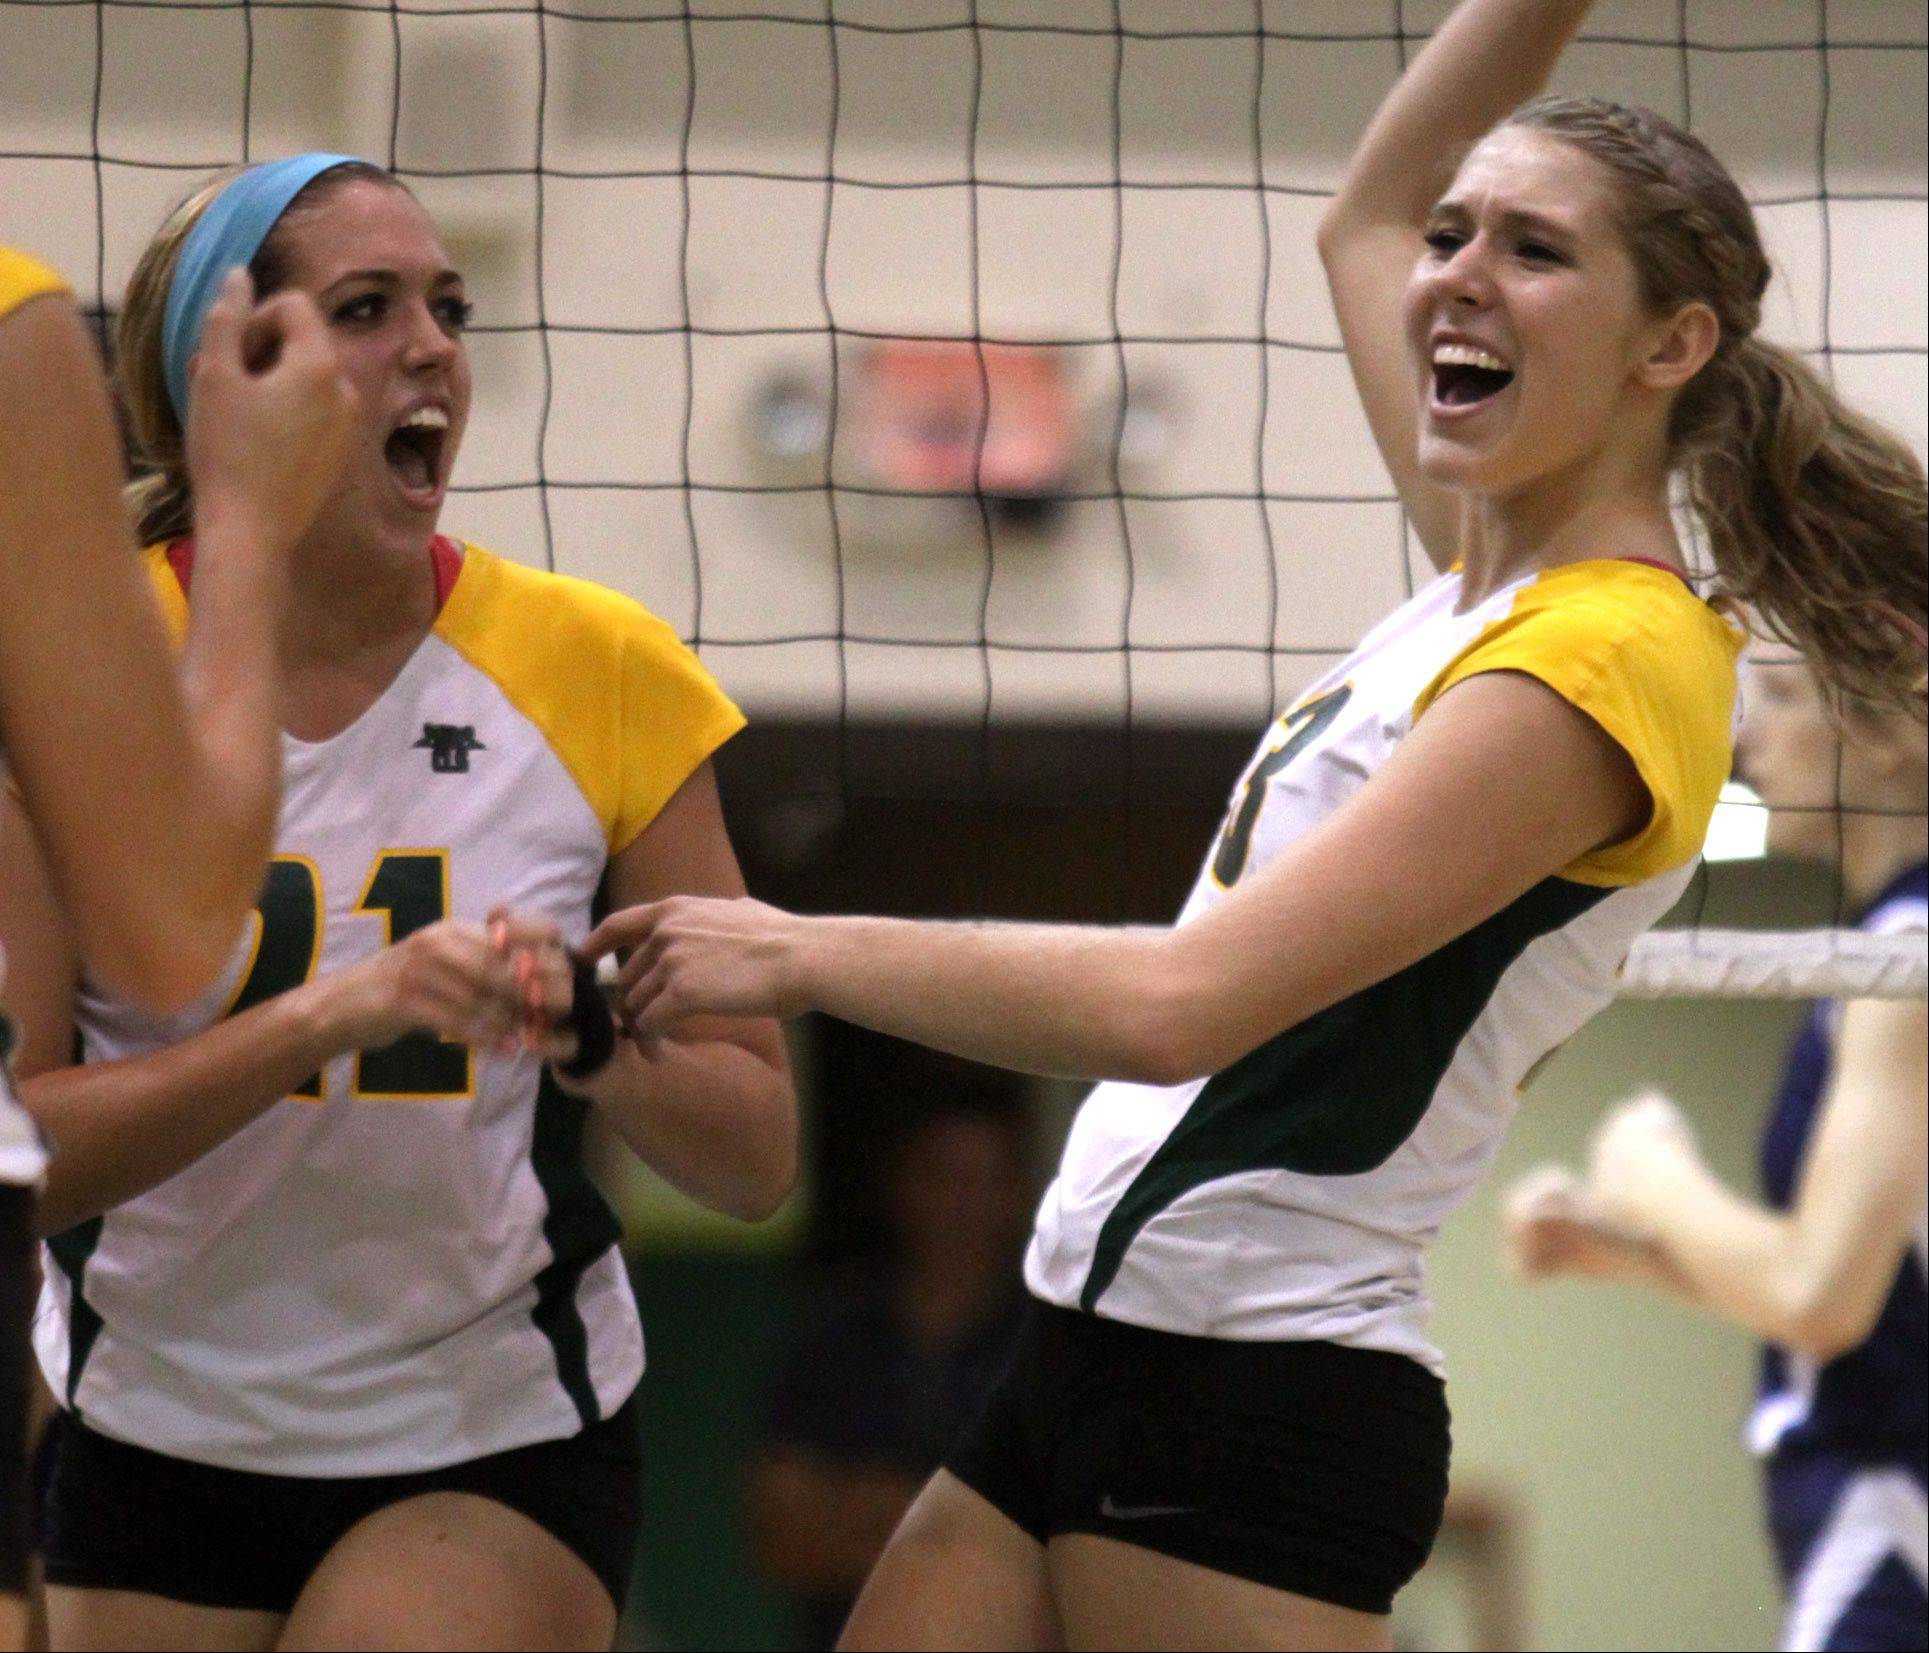 Crystal Lake South's Katy Hoenle, left, and Sara Mickow celebrate their victory over Cary-Grove during Thursday's volleyball match in Crystal Lake.